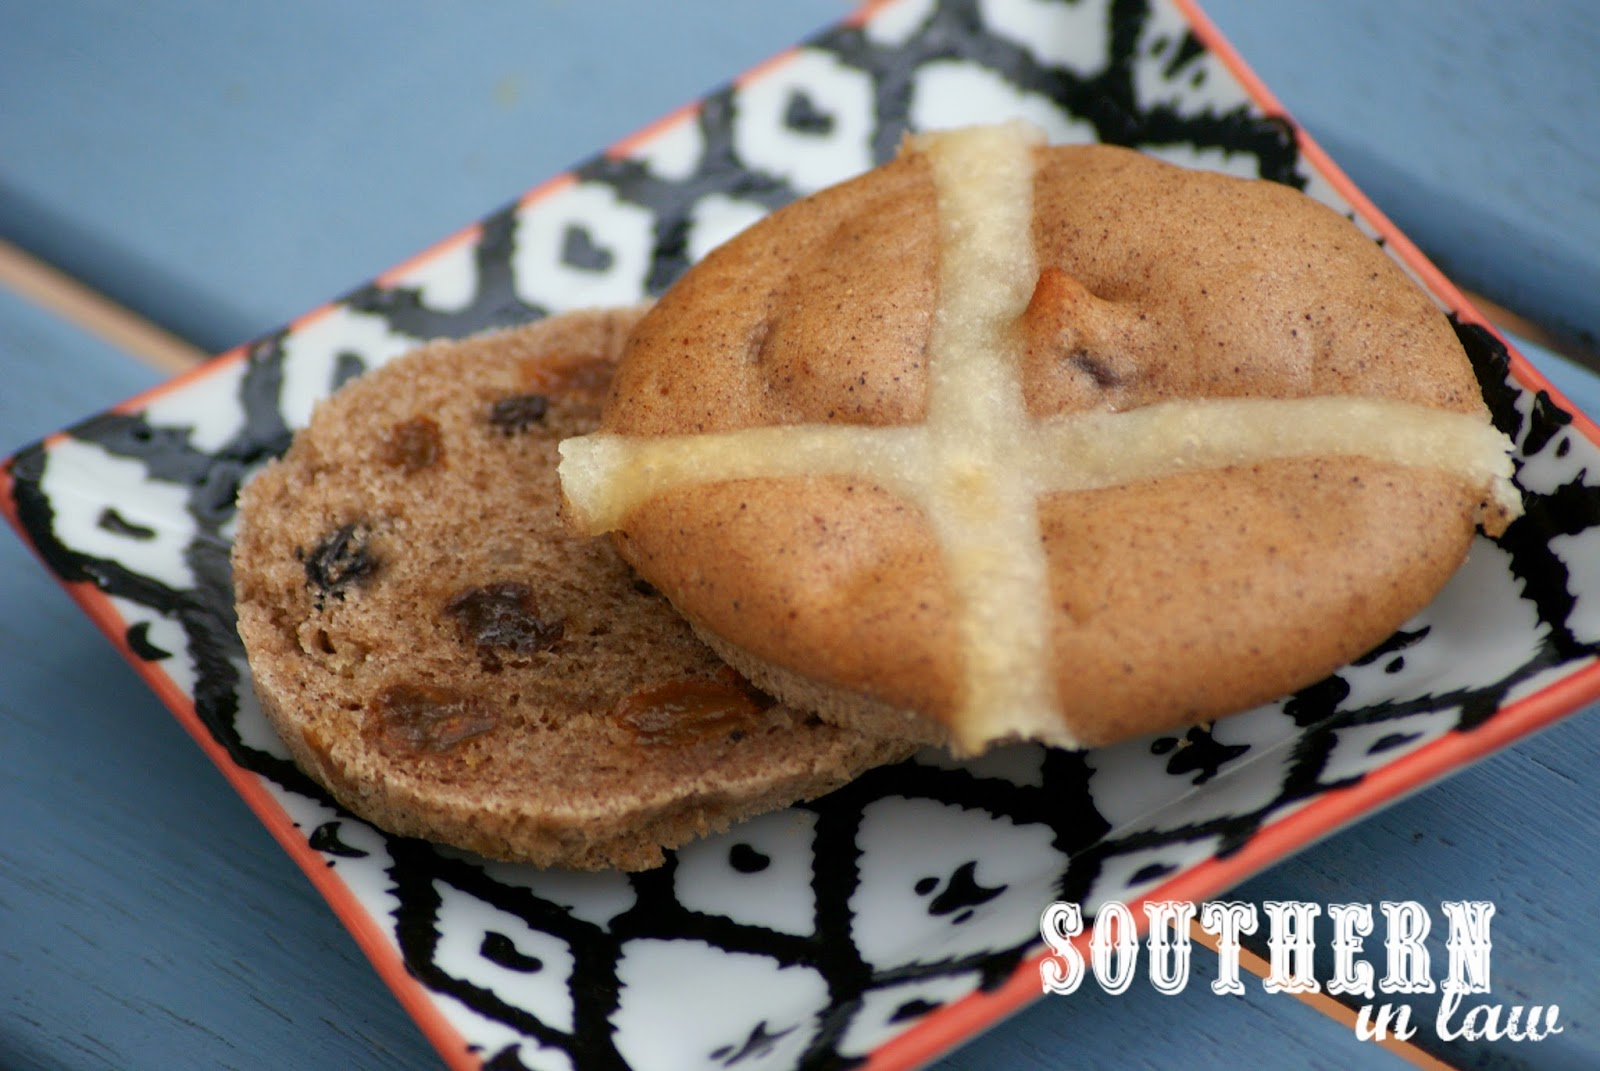 Gluten Free Hot Cross Buns from Choices Gluten Free Bakery